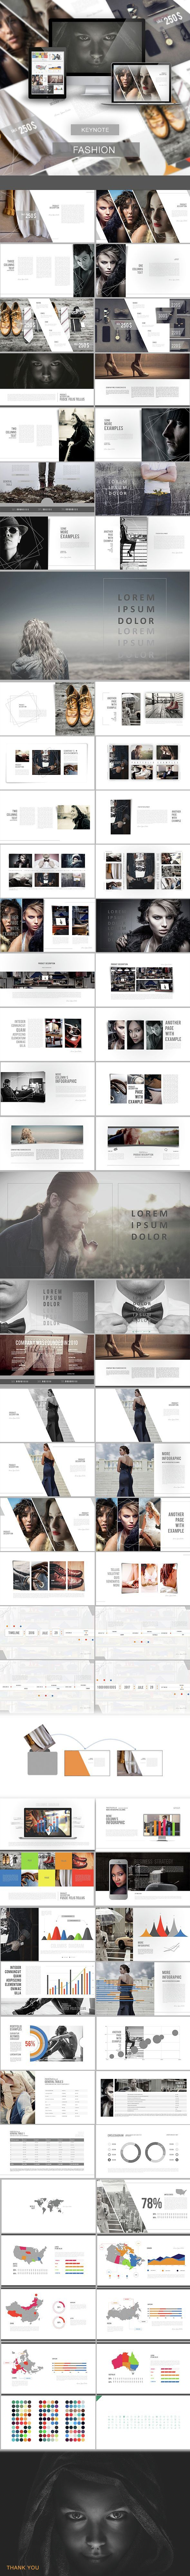 Fashion - Keynote Presentation Template